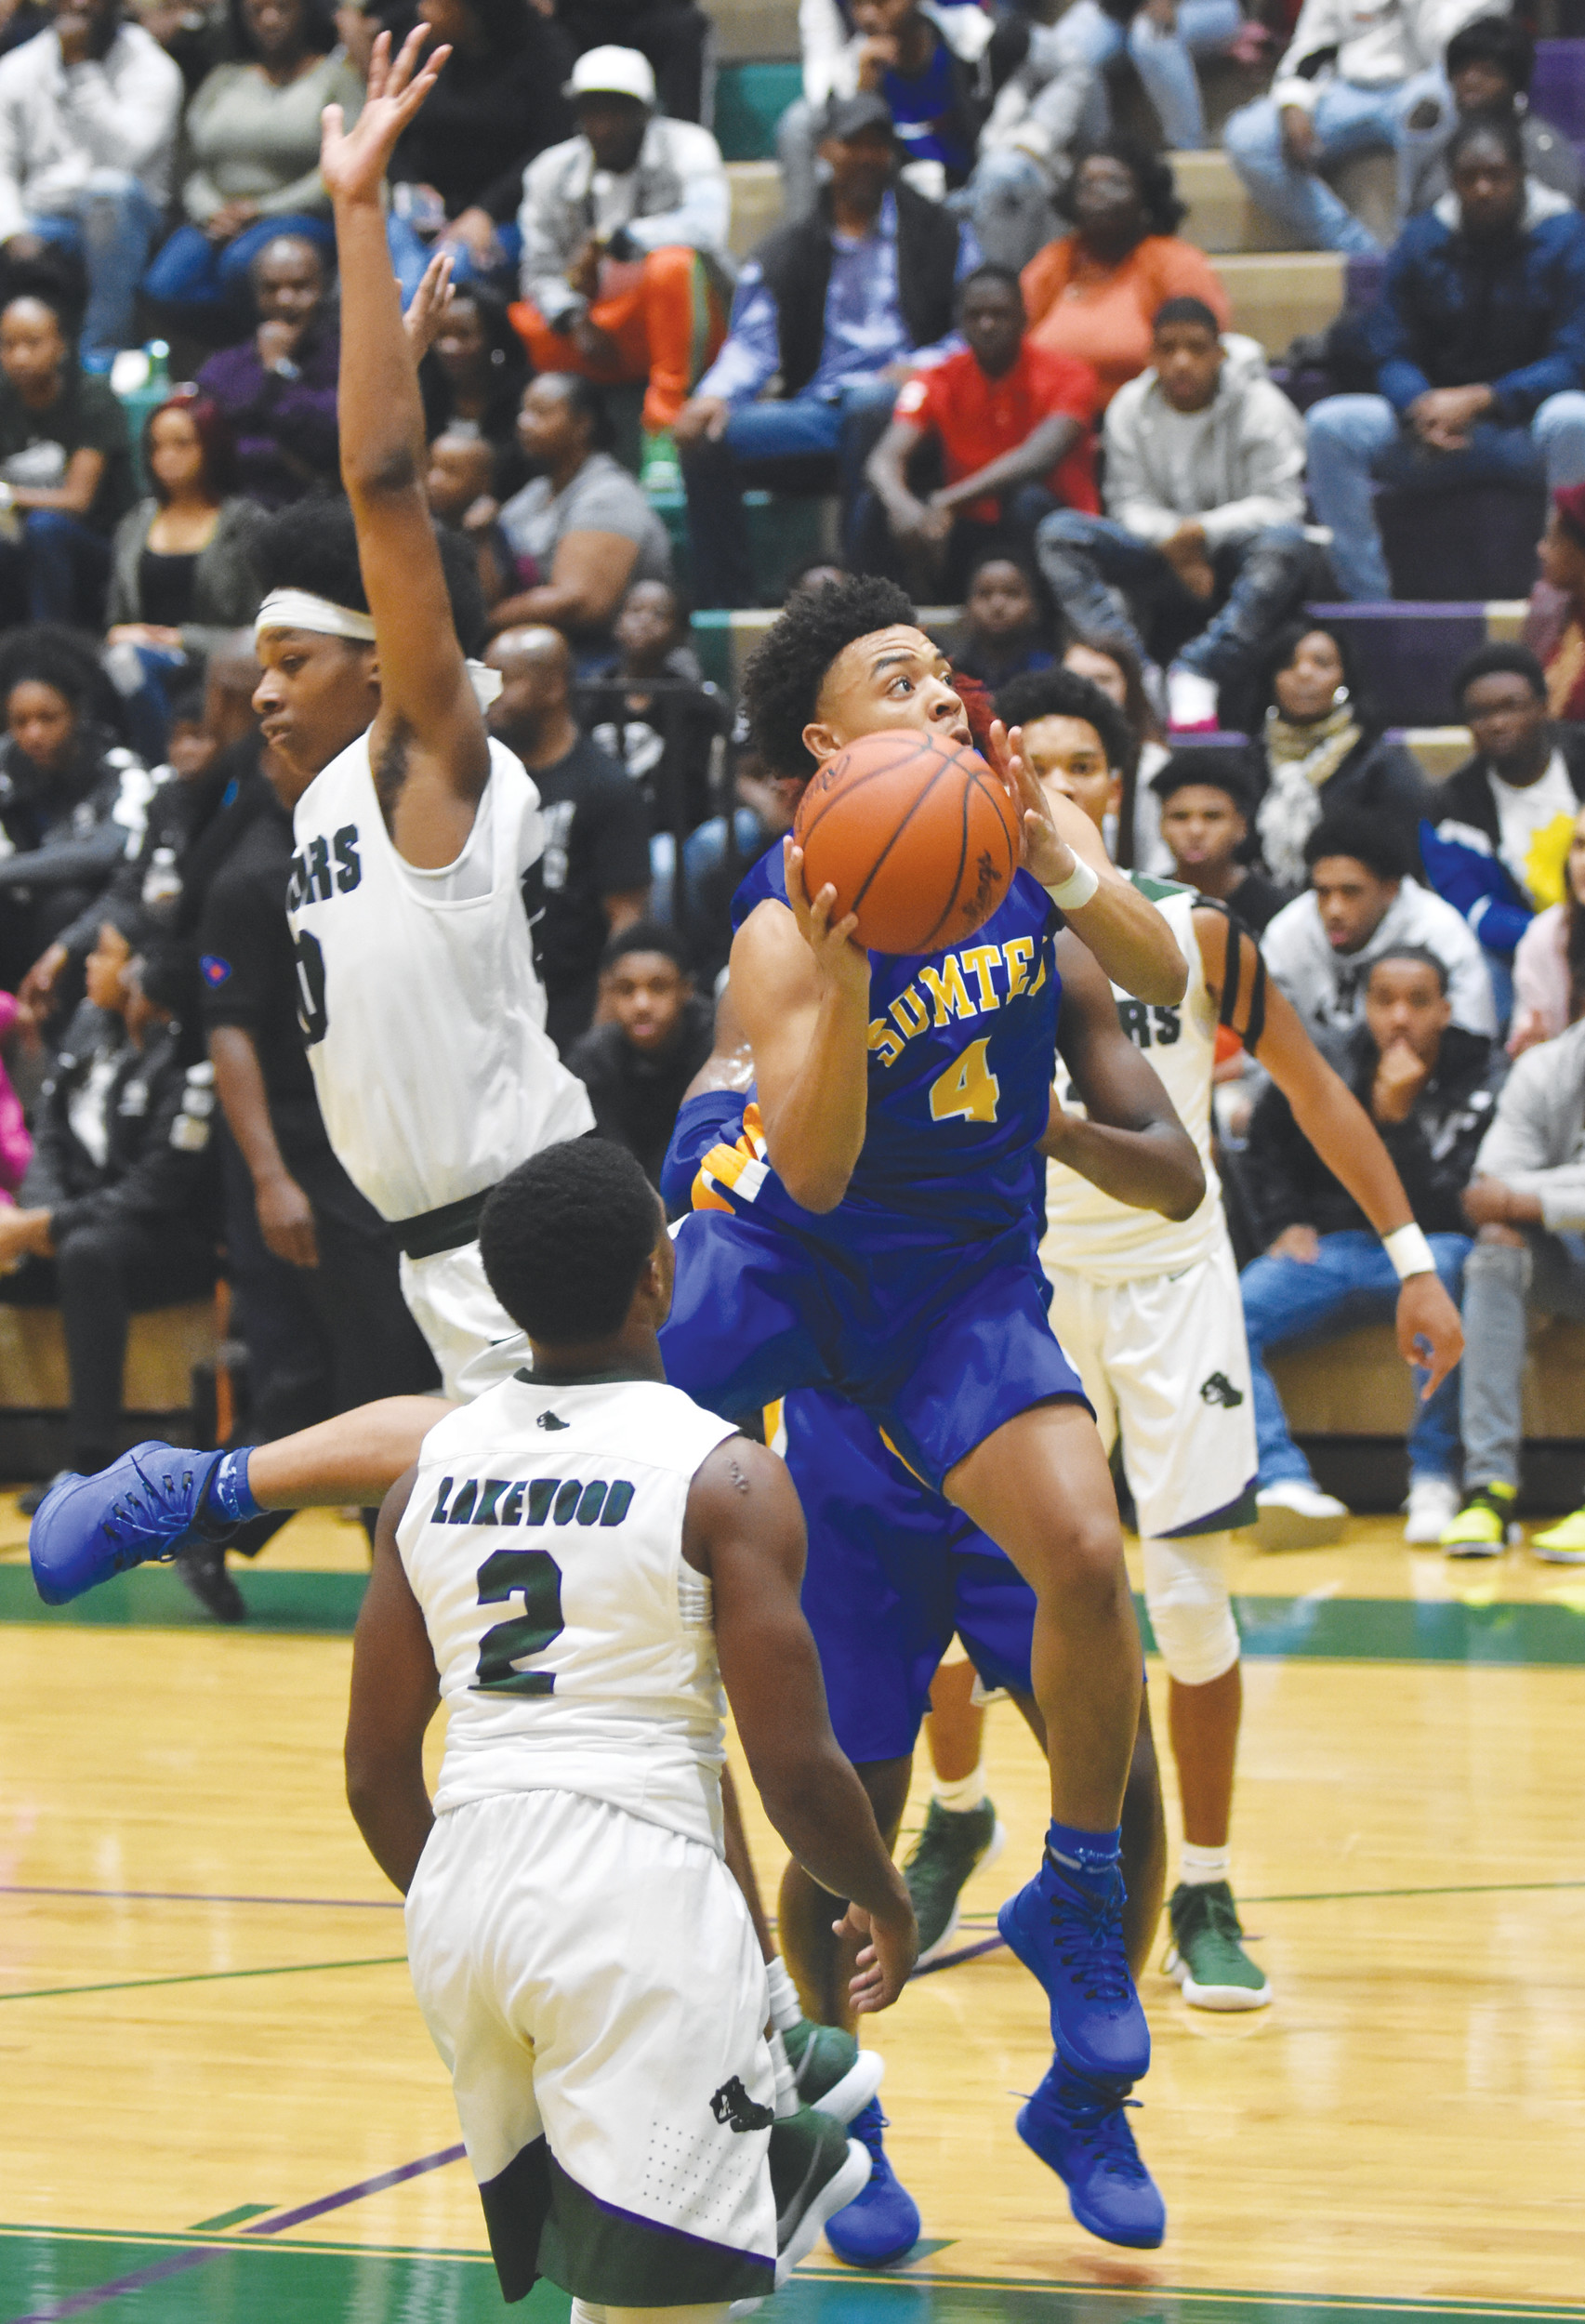 Sumter's Cameron Singleton (4) puts up a shot in the fourth quarter of the Gamecocks' 70-37 victory over Lakewood on Friday at The Swamp.